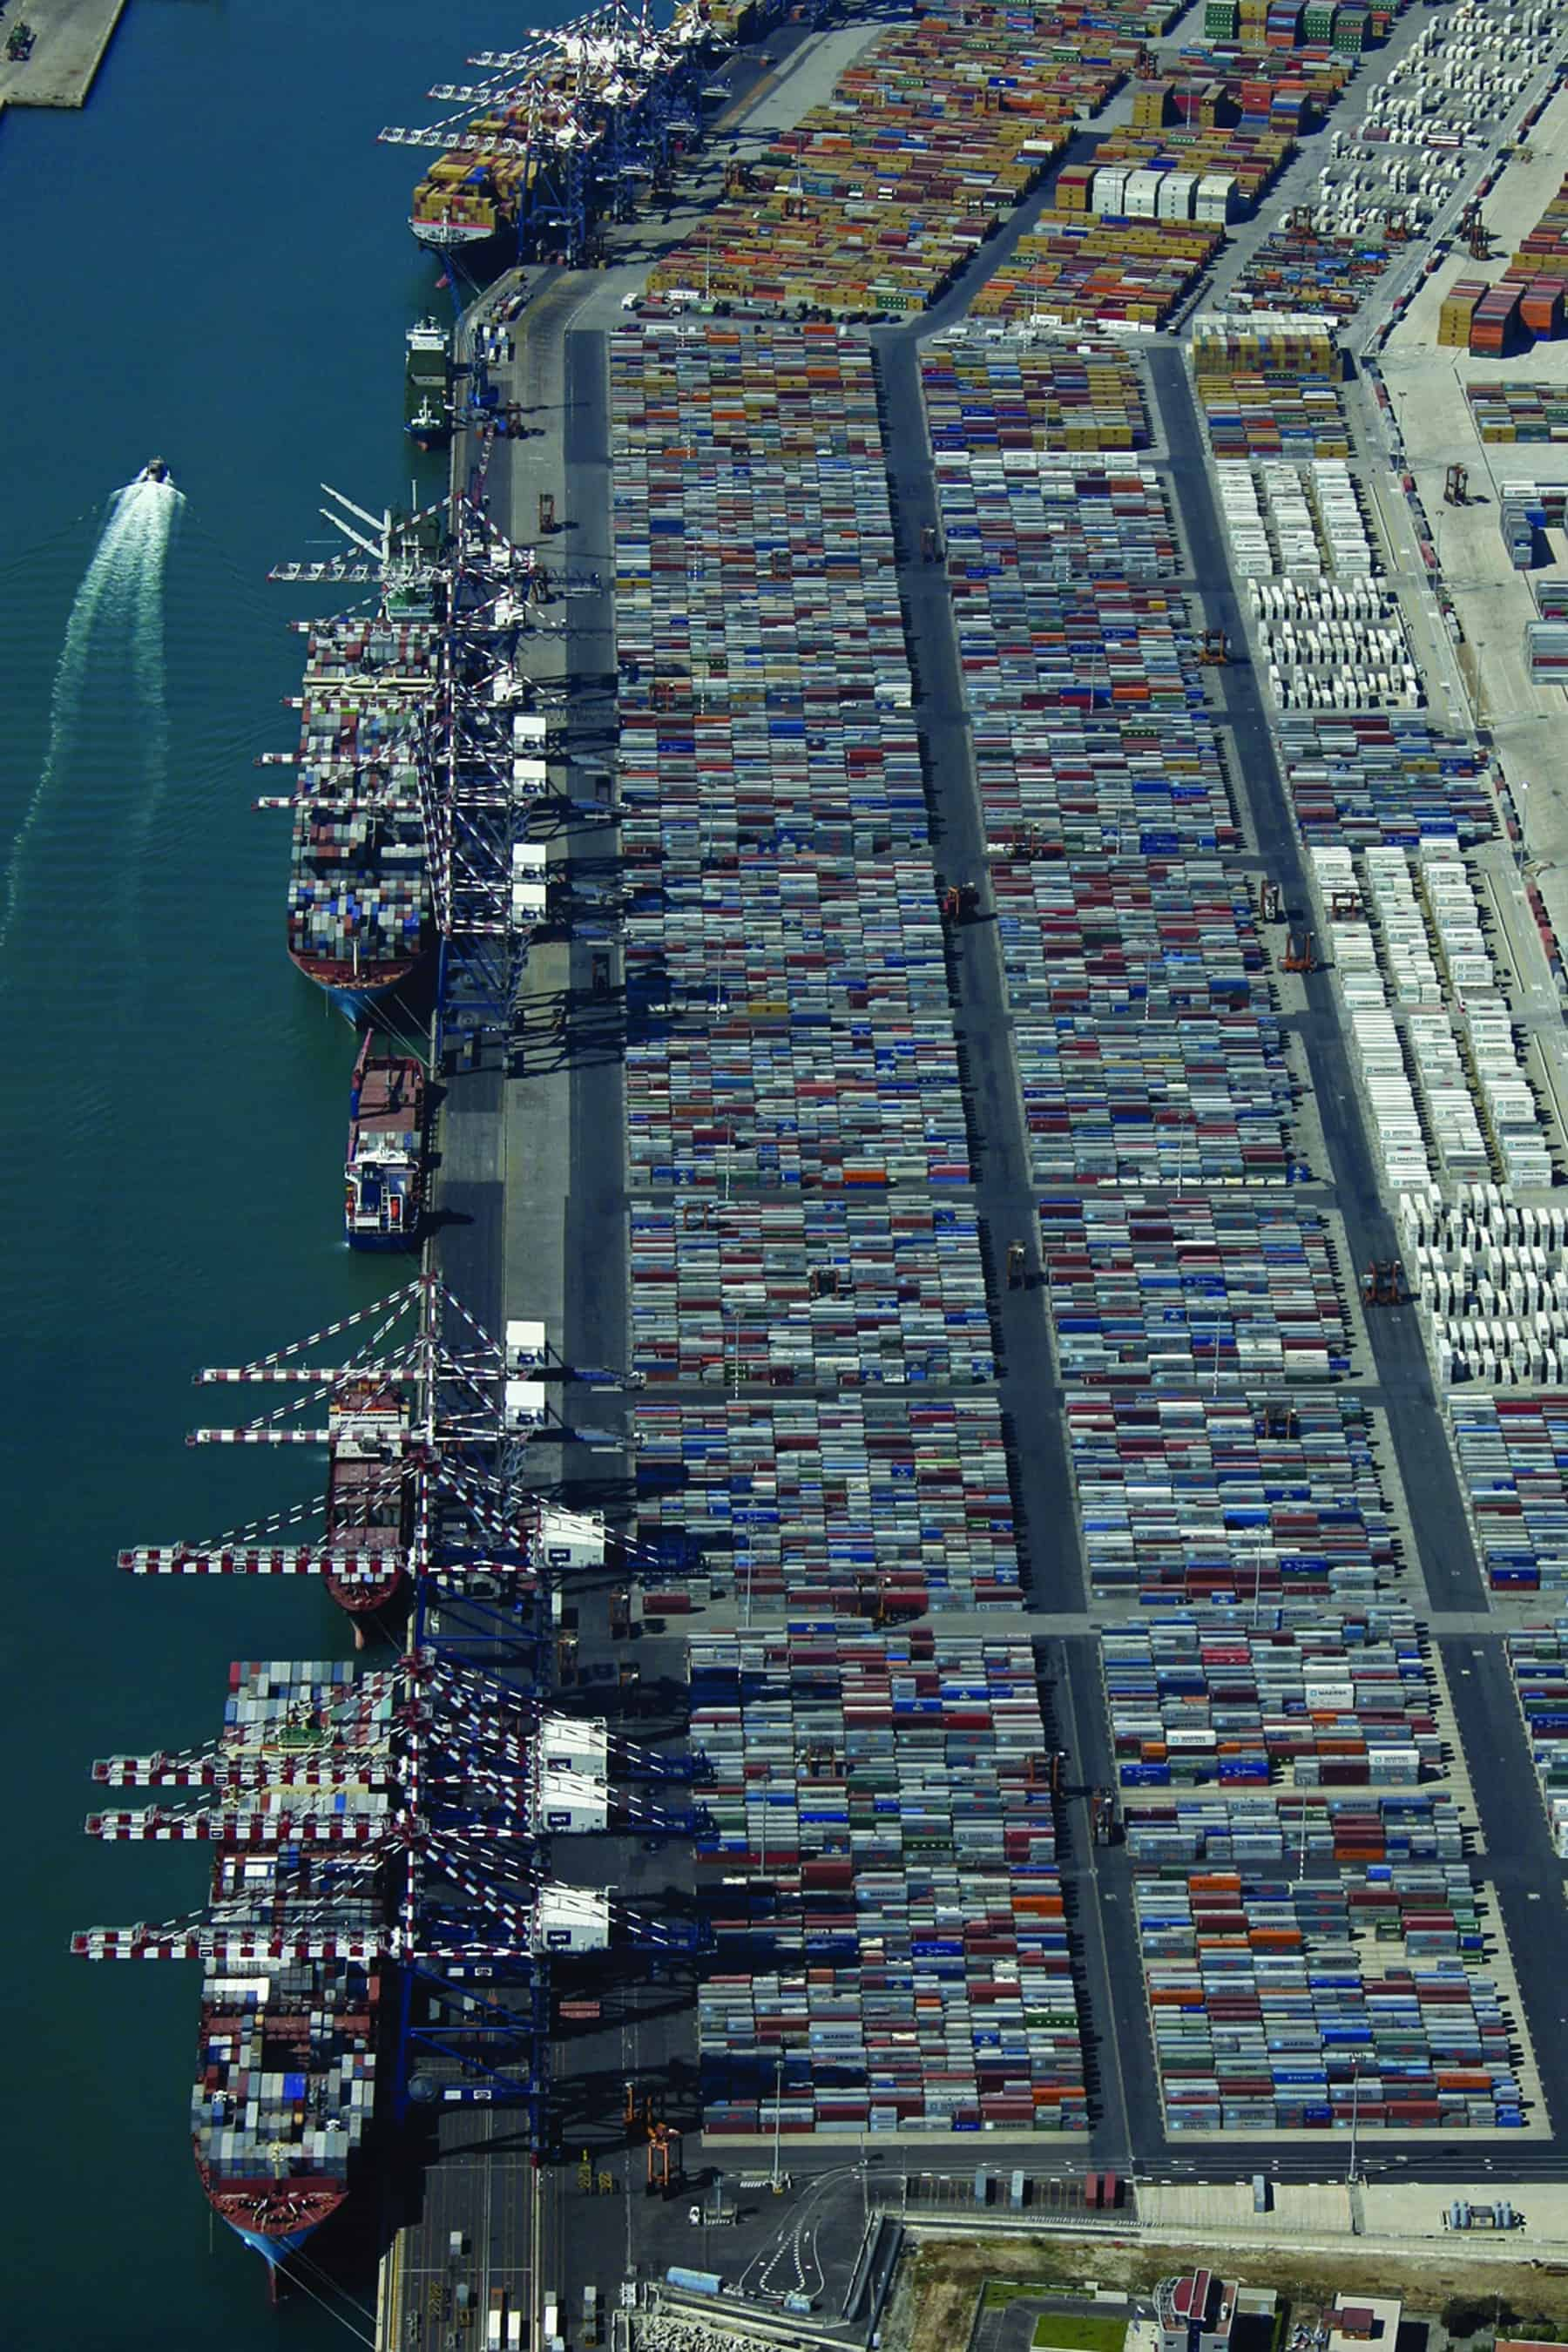 Gioia Tauro Italy  city pictures gallery : Gioia Tauro is Italy's biggest transhipment hub